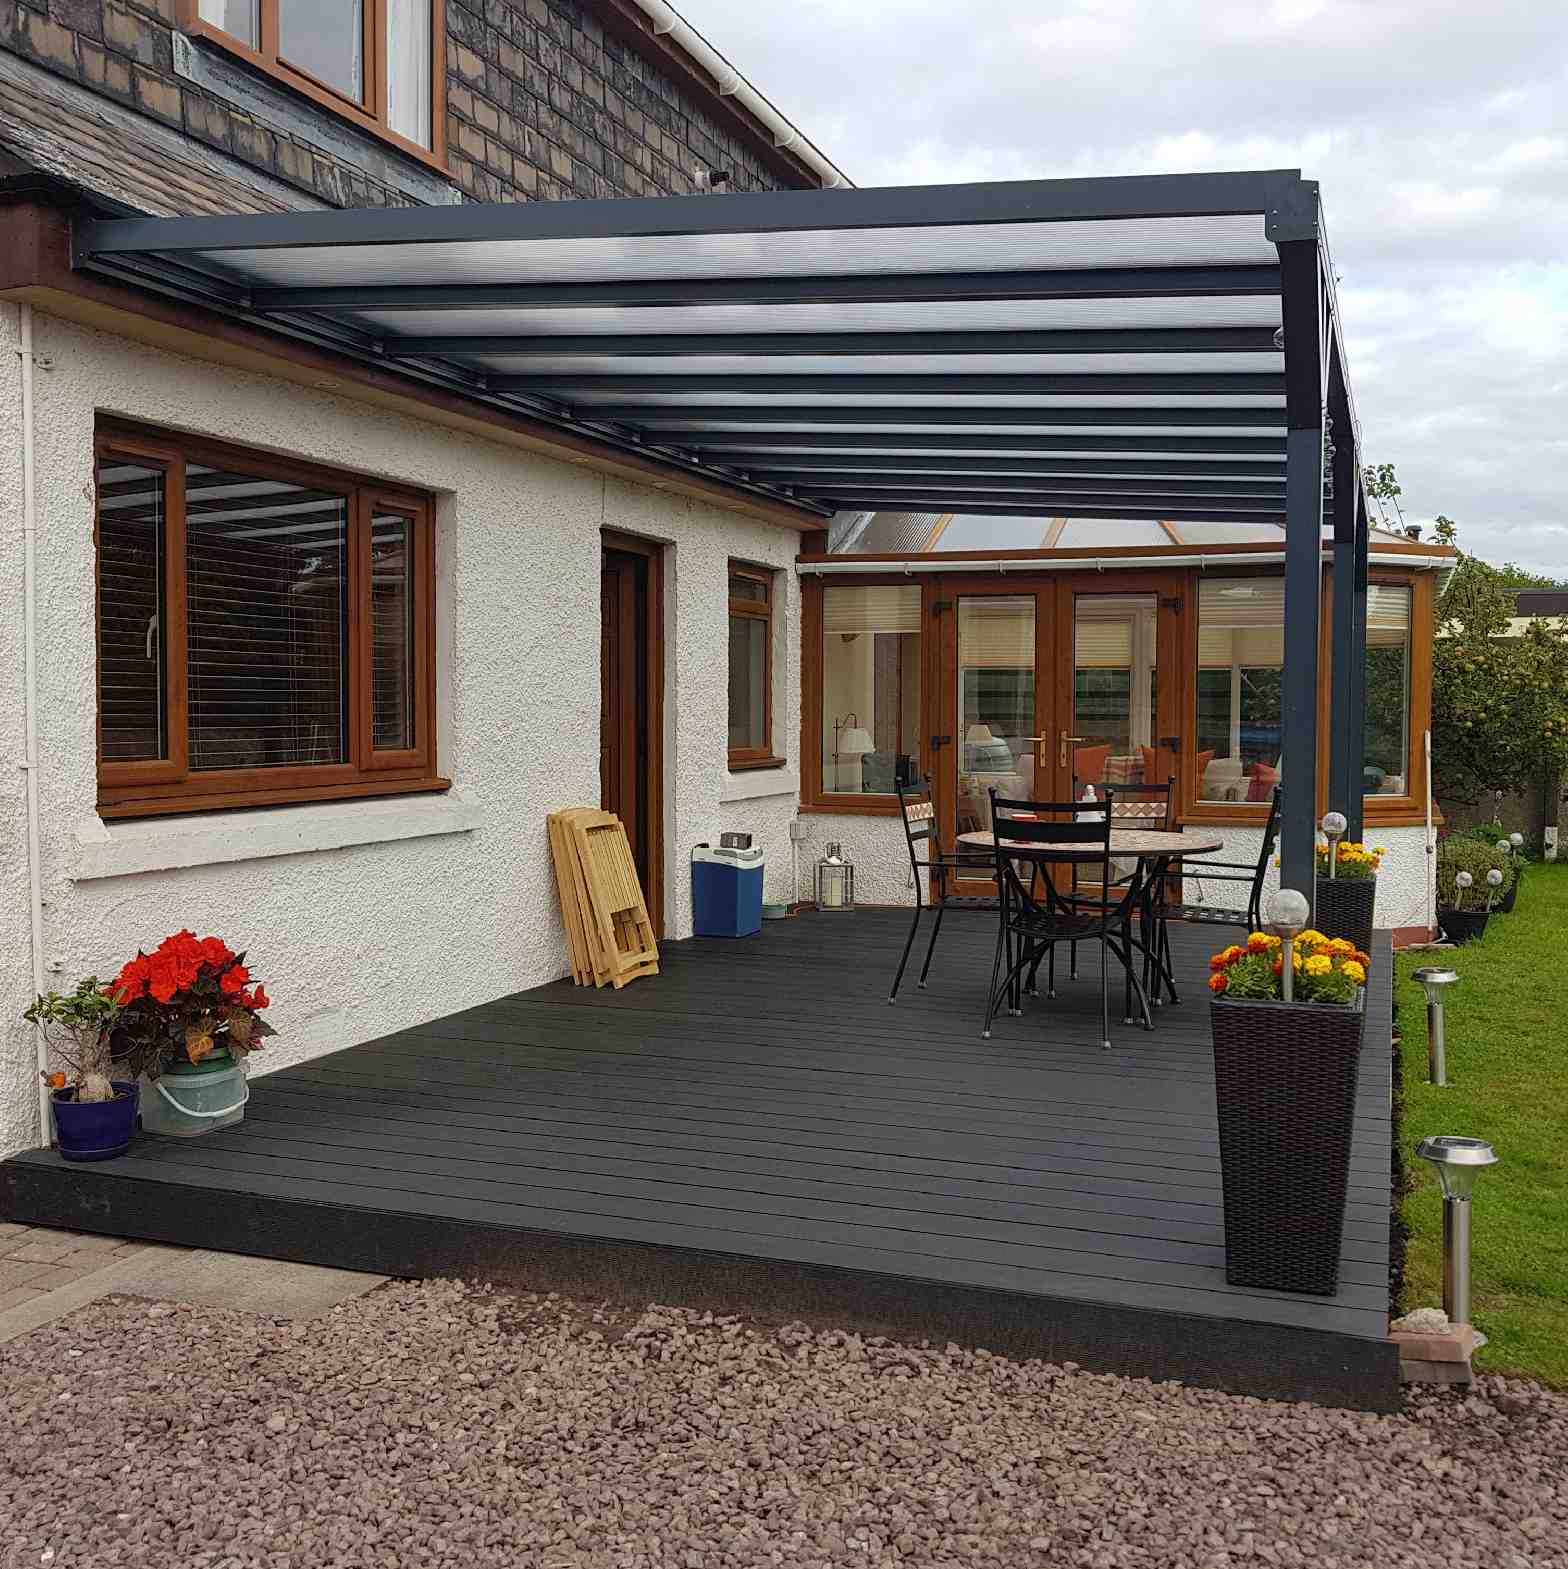 Buy Omega Verandah, Anthracite Grey, 16mm Polycarbonate Glazing - 2.1m (W) x 4.0m (P), (2) Supporting Posts online today